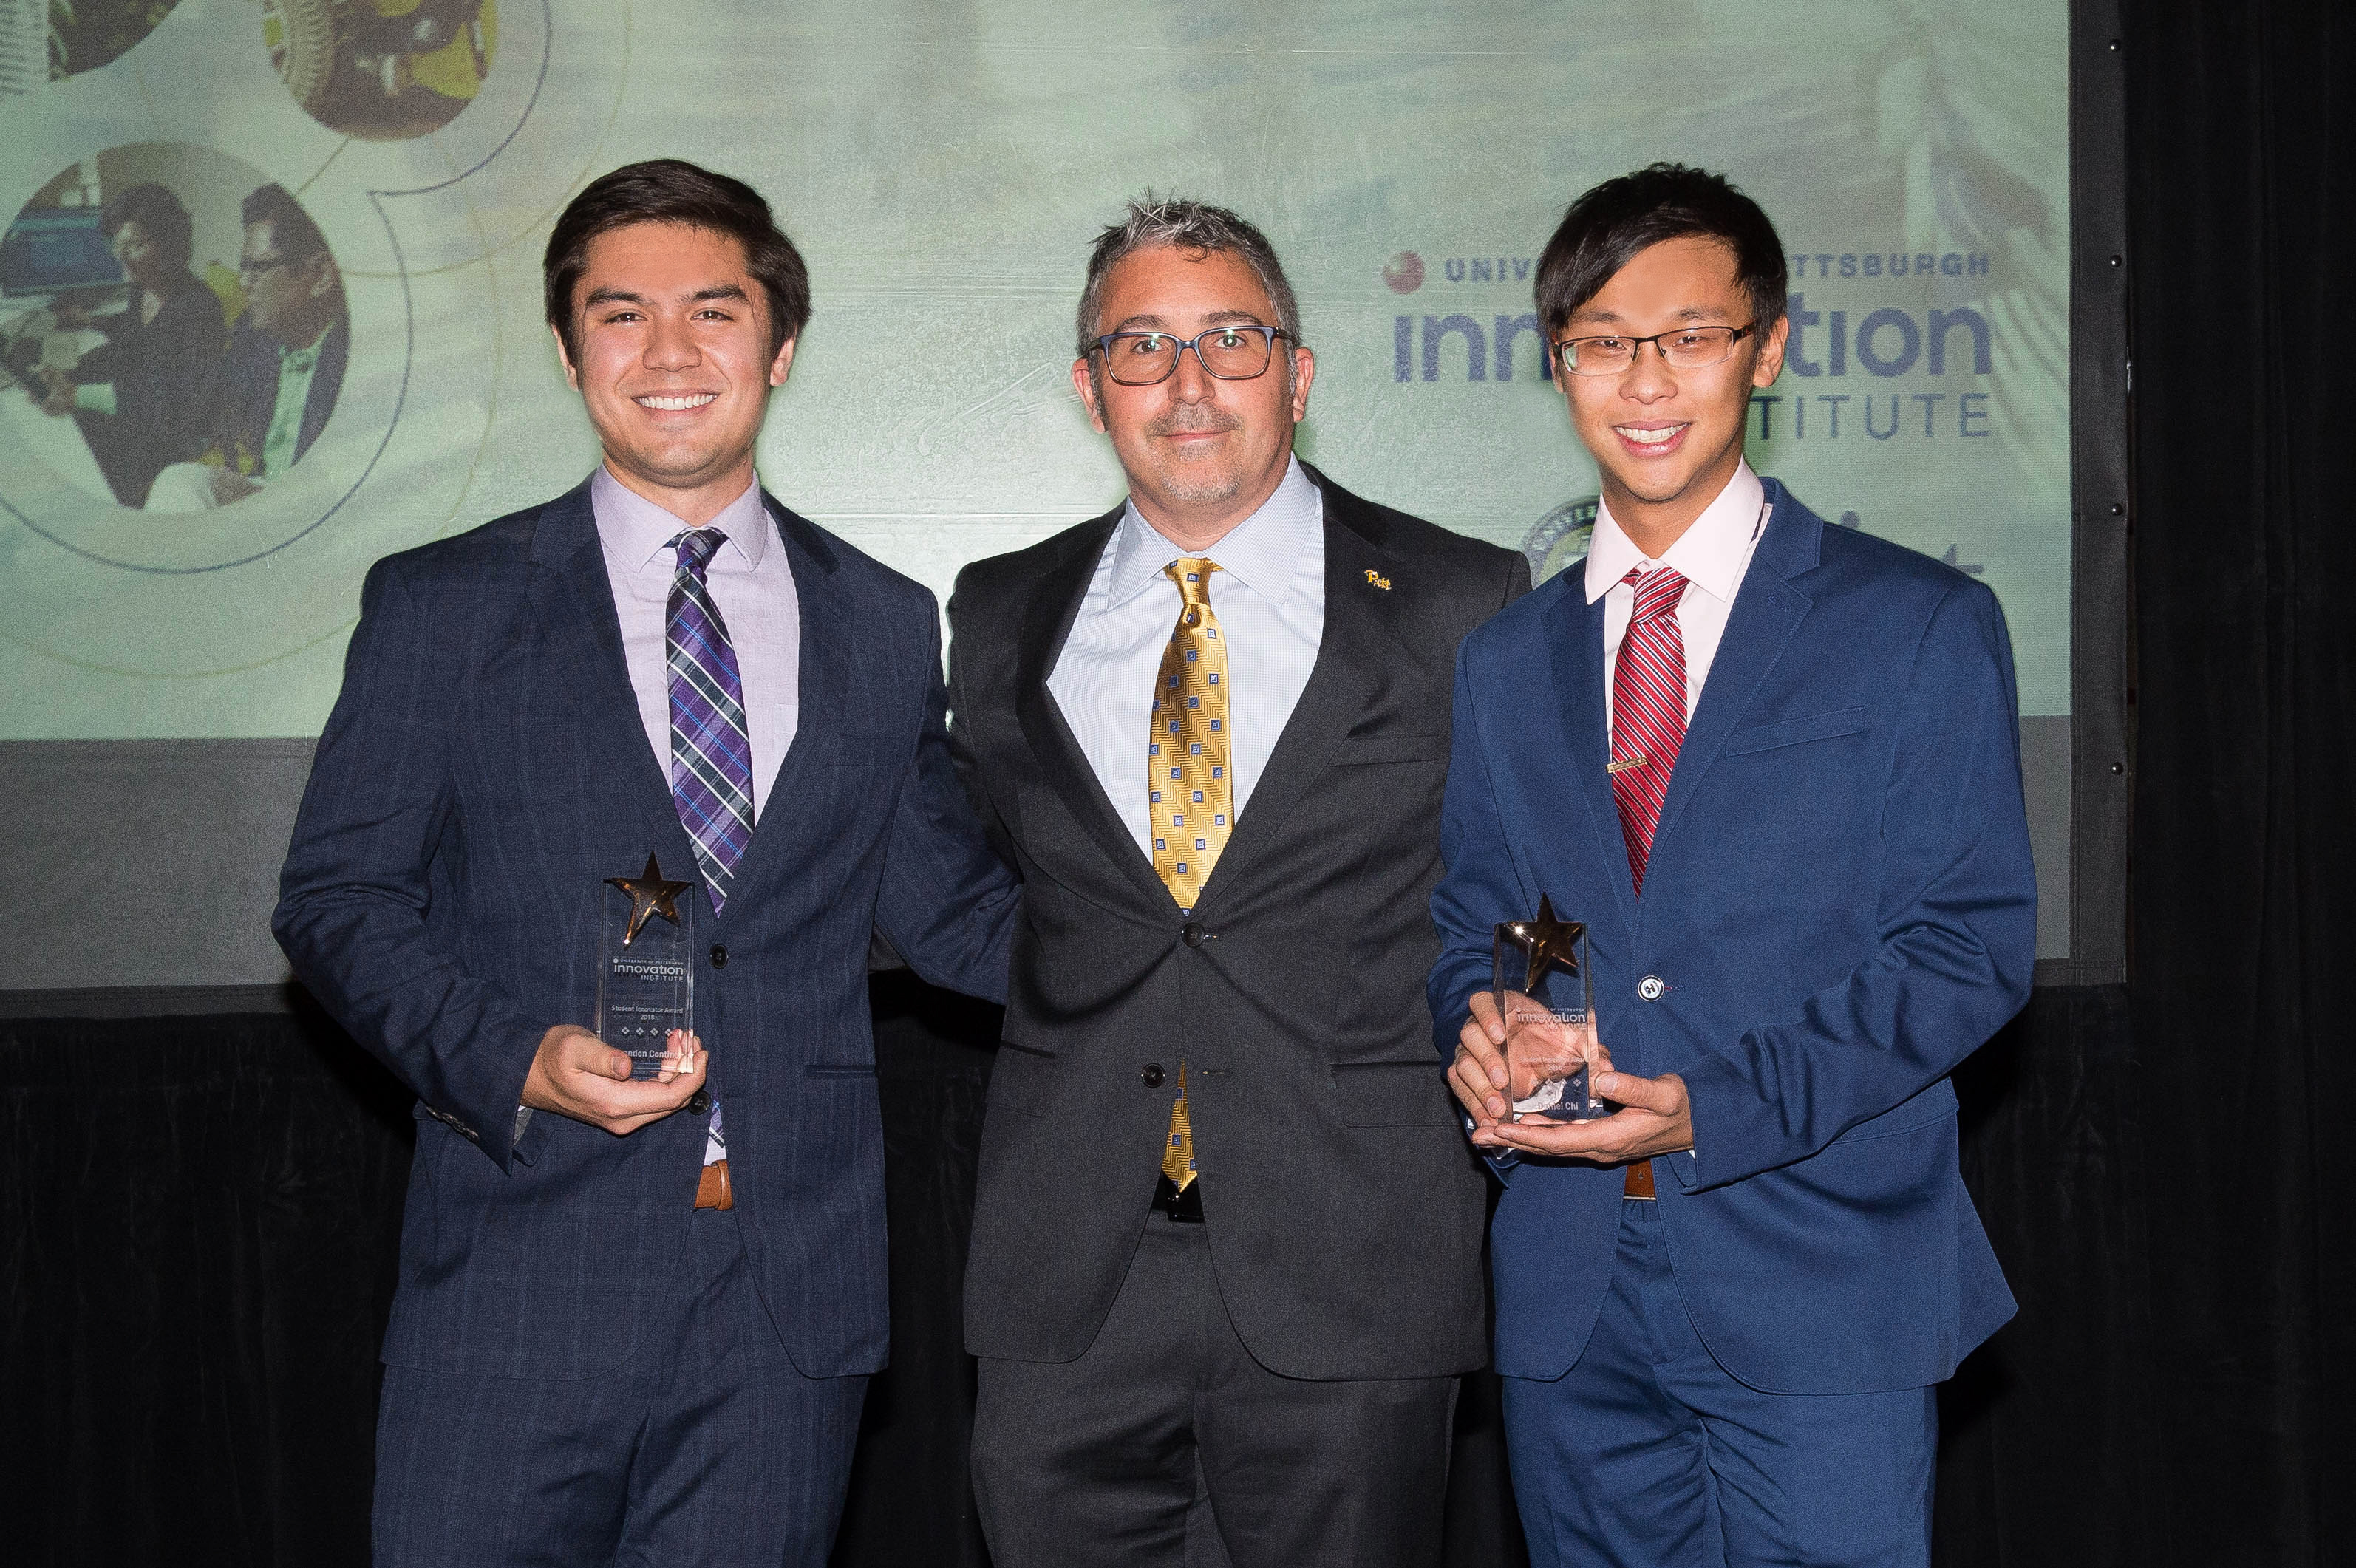 The Student Innovator Award: was presented to Four Growers, Brandon Contino, Electrical Engineering Alumnus and Daniel Chi, Mechanical Engineering Alumnus by Evan Facher, Director of the Innovation Institute & the Vice Chancellor for Innovation & Entrepreneurship at the University of Pittsburgh.